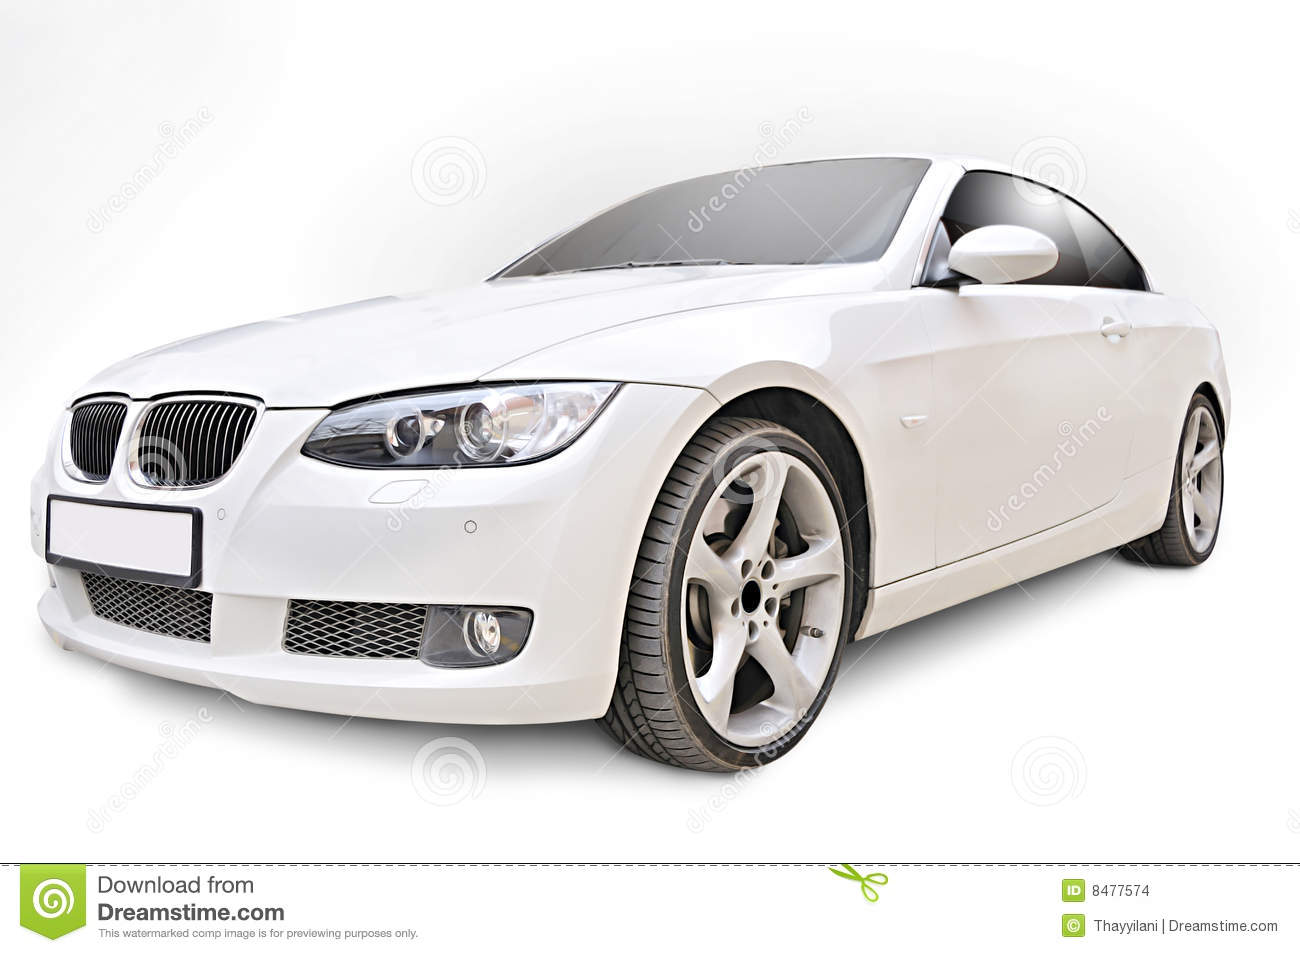 Bmw 335i Convertible Car Stock Photo Image Of Autoshow